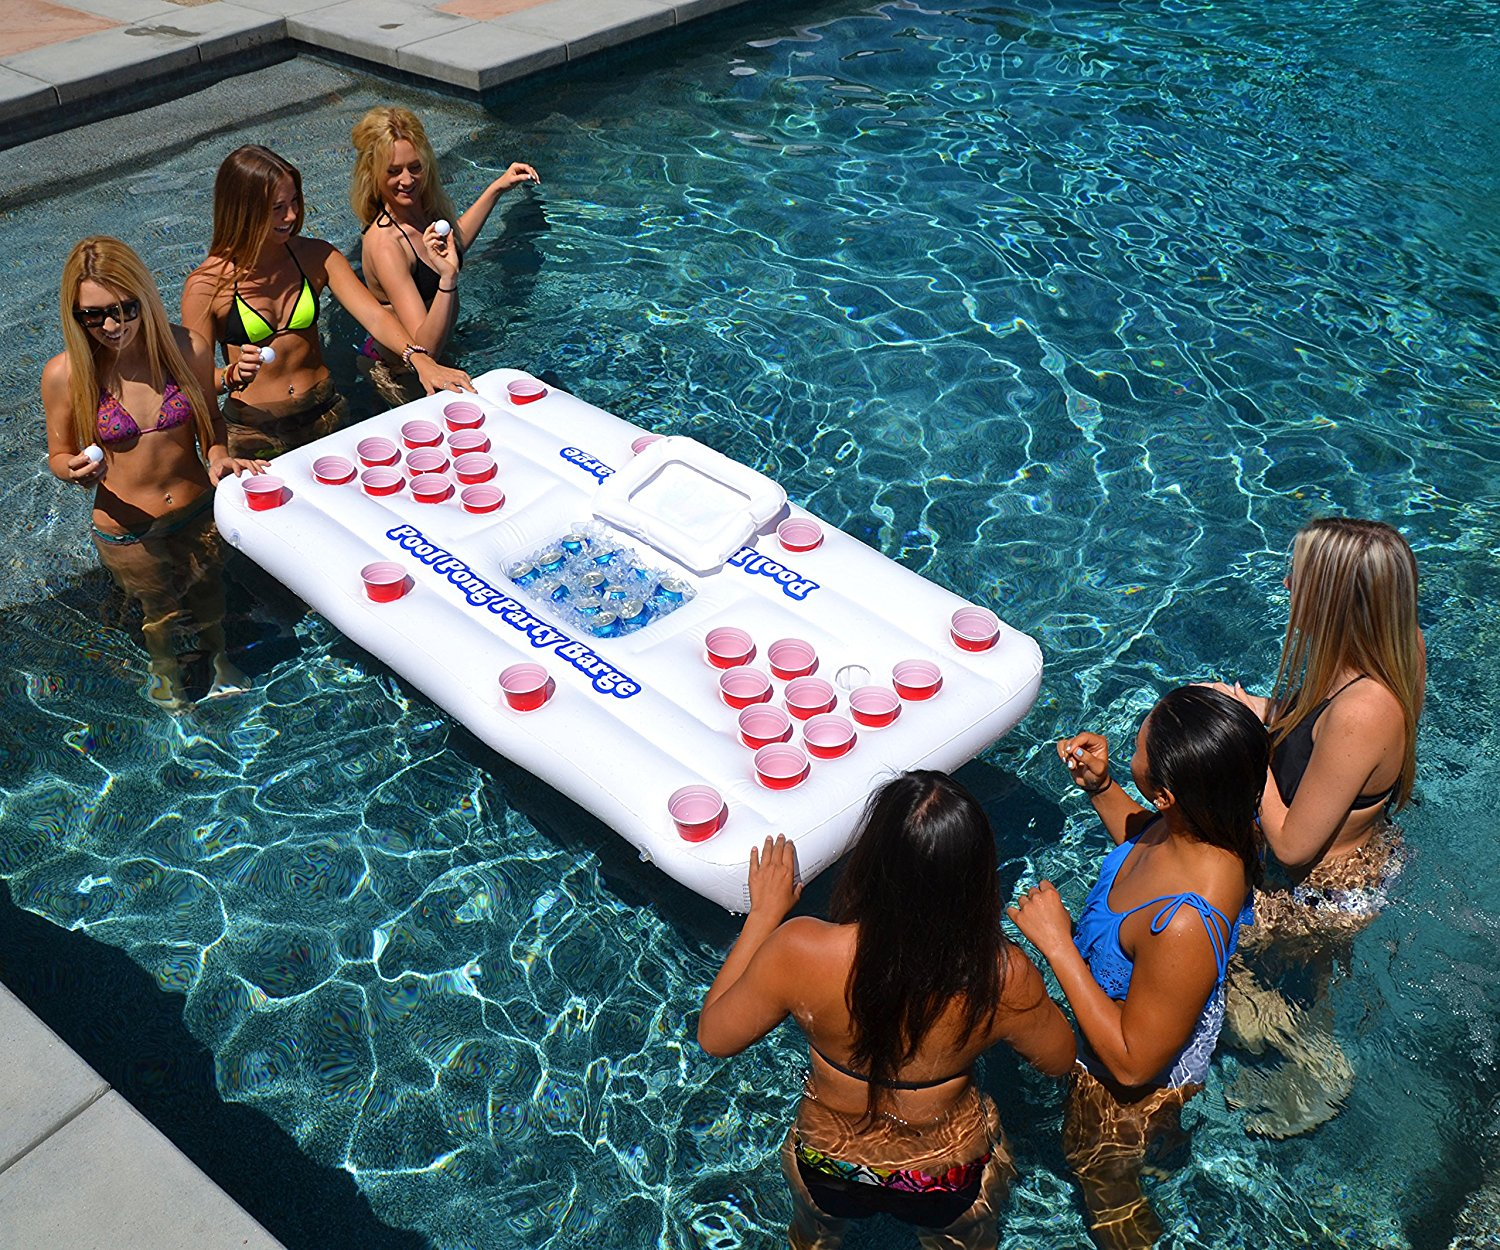 Floating Beer Pong Table - The most Instagram worthy Pool Floats Summer 2017